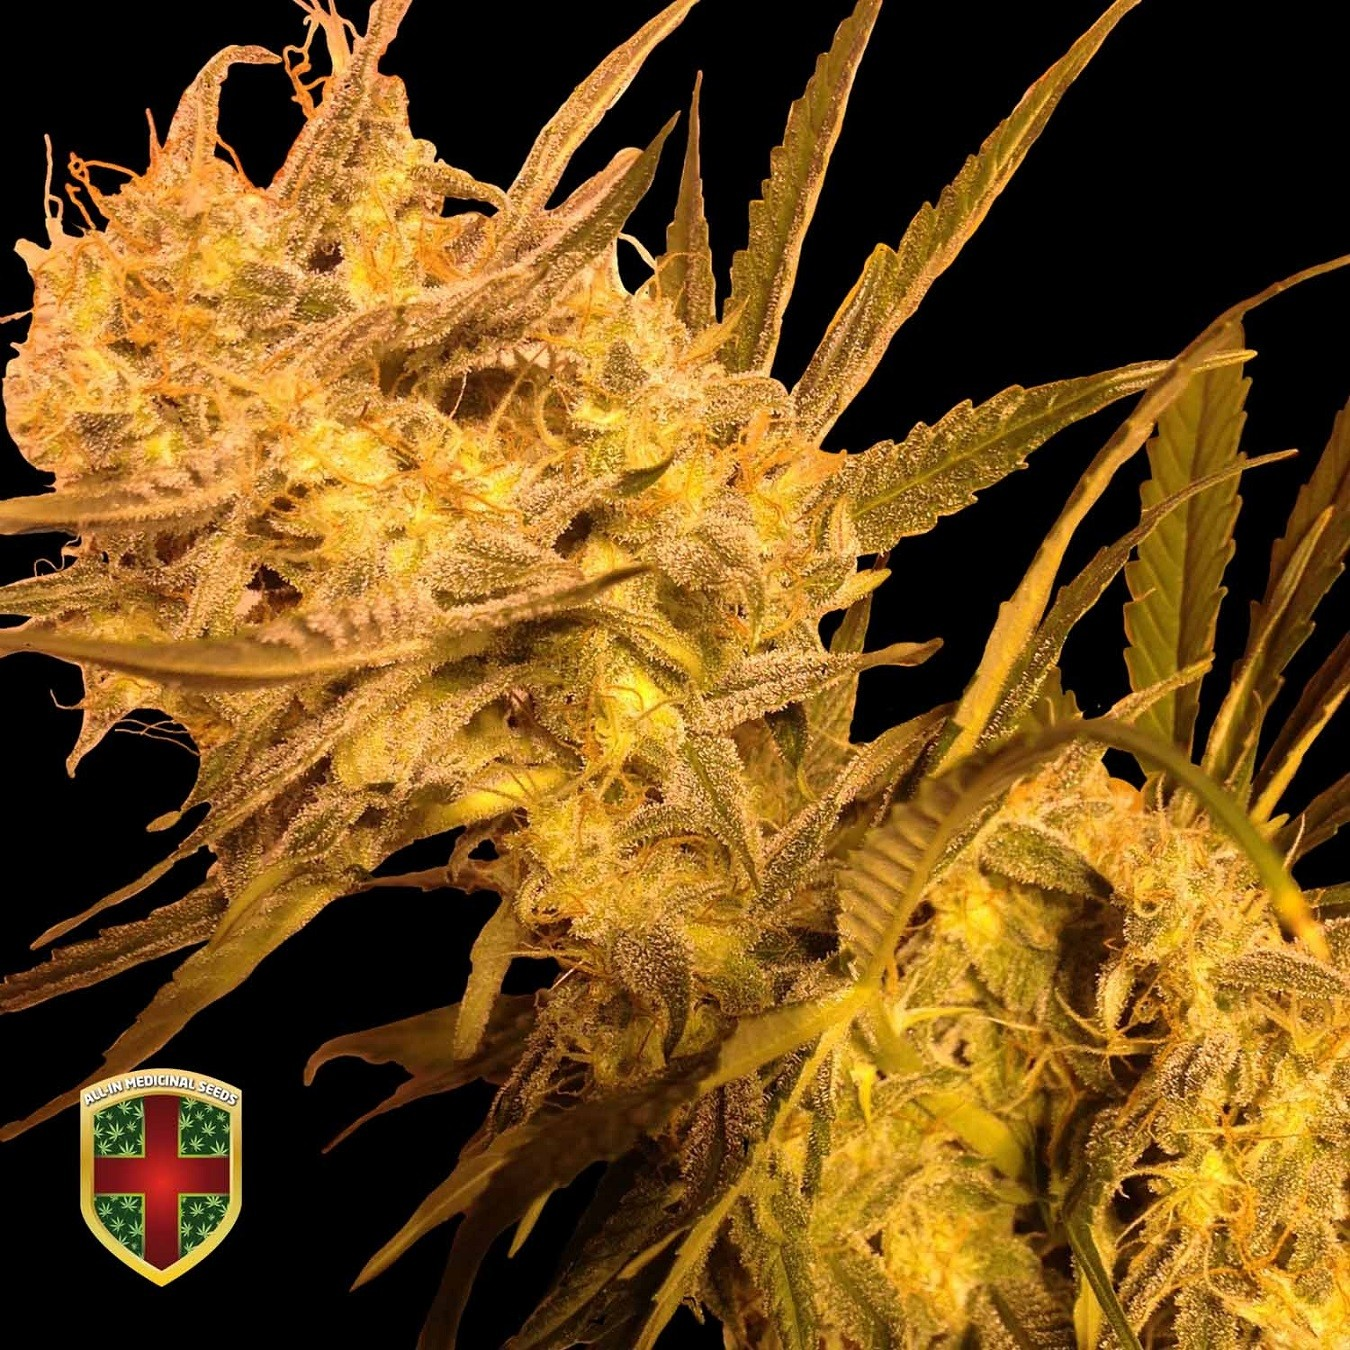 BENEDICTA  5 UNDS FEM - ALL-IN MEDICINAL - ALL-IN MEDICINAL SEEDS